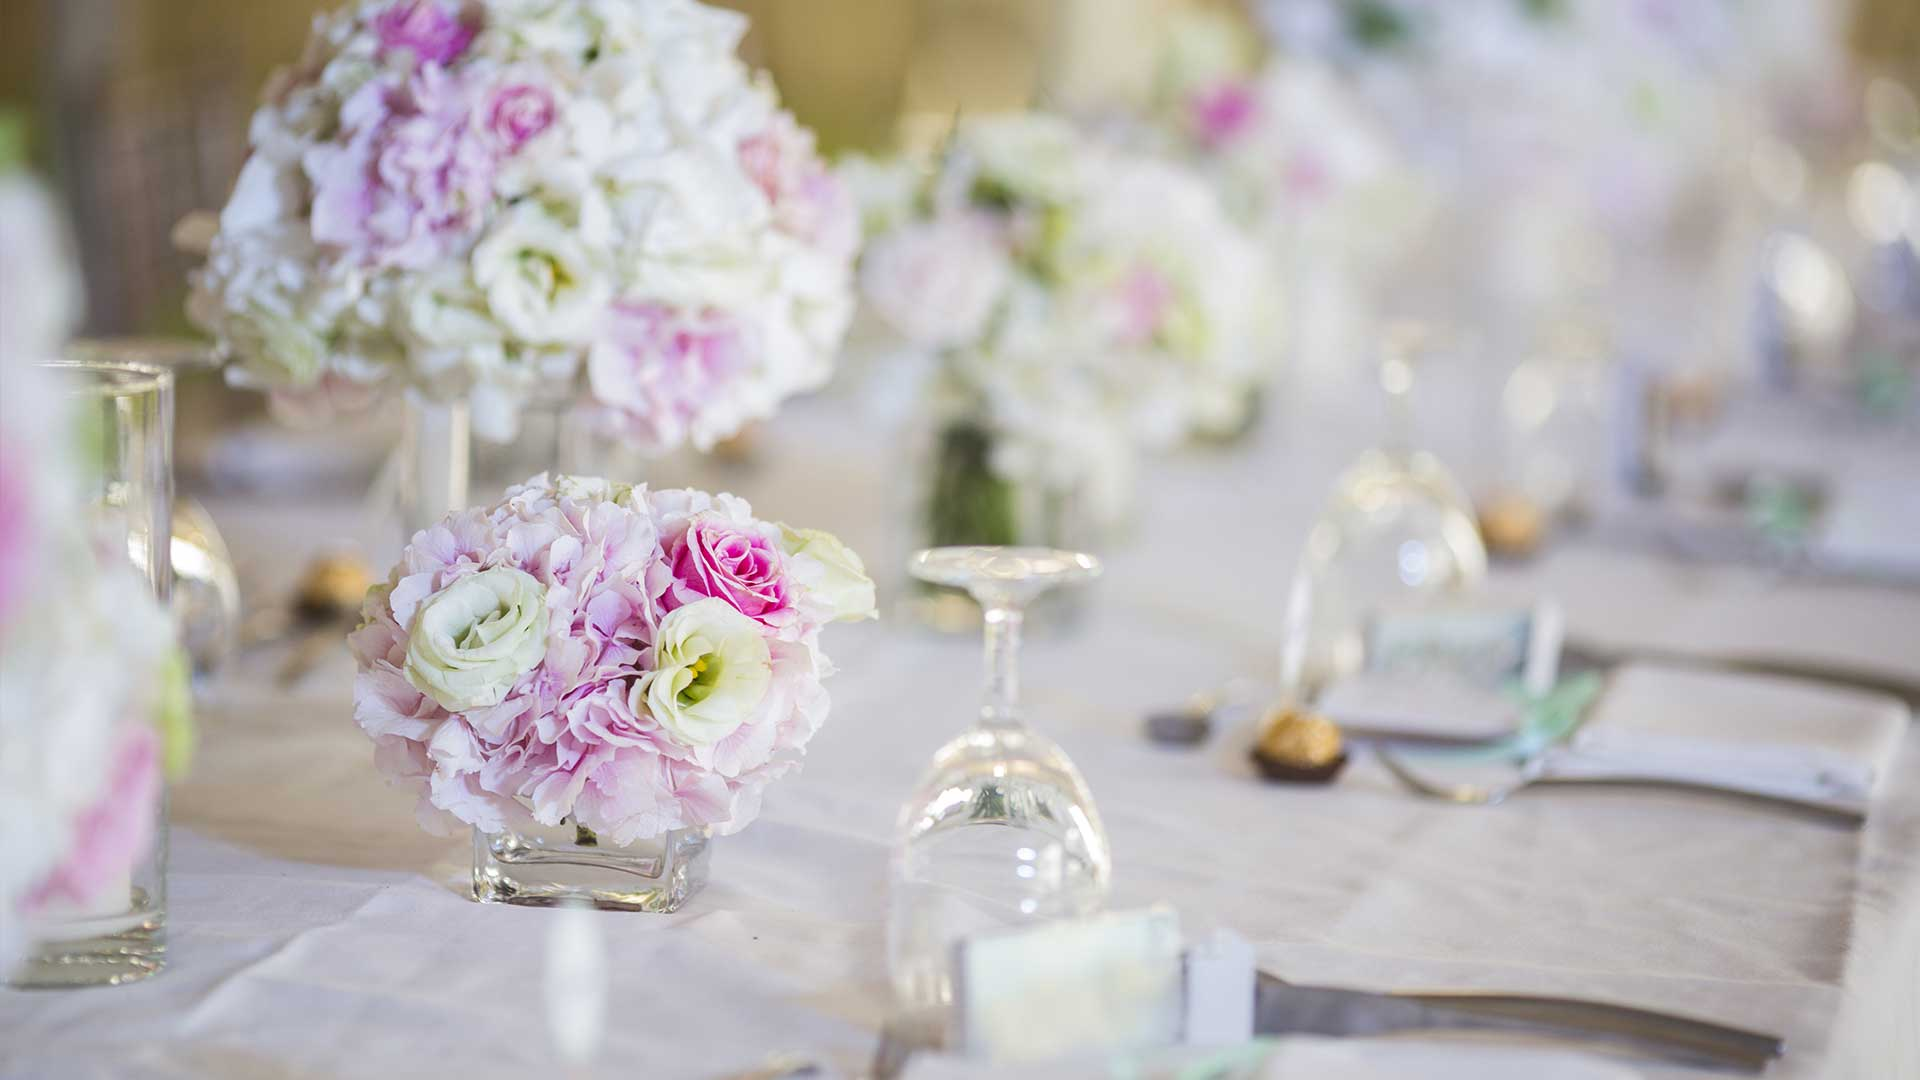 Top 4 Wedding Themes for Every Bridal Style